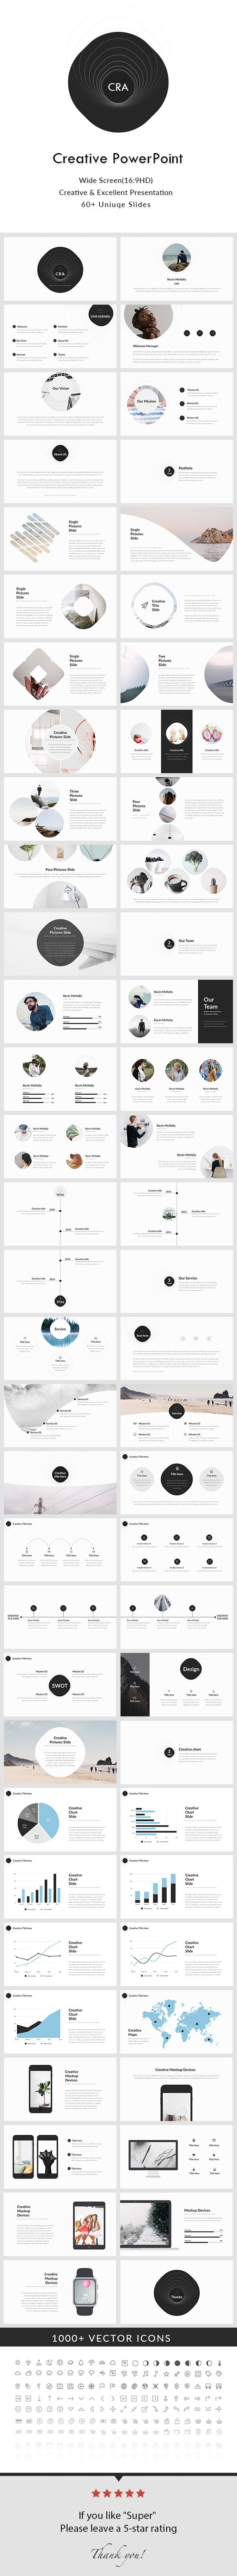 Creative PowerPoint Presentation Template — Powerpoint PPT #chart #modern • Download ➝ https://graphicriver.net/item/creative-powerpoint-presentation-template/18937019?ref=pxcr